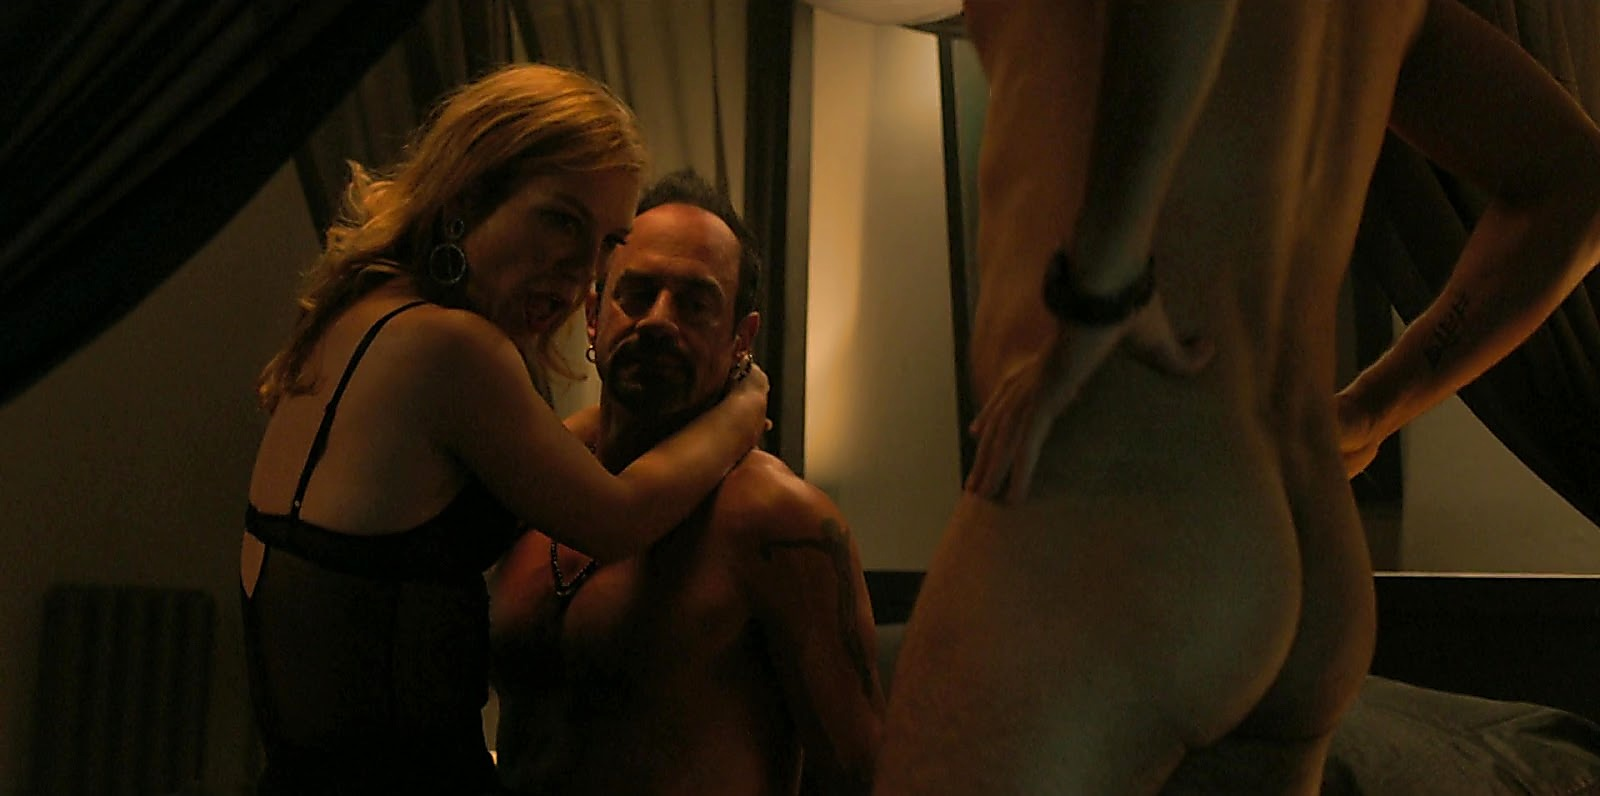 Christopher Meloni sexy shirtless scene July 28, 2020, 12pm